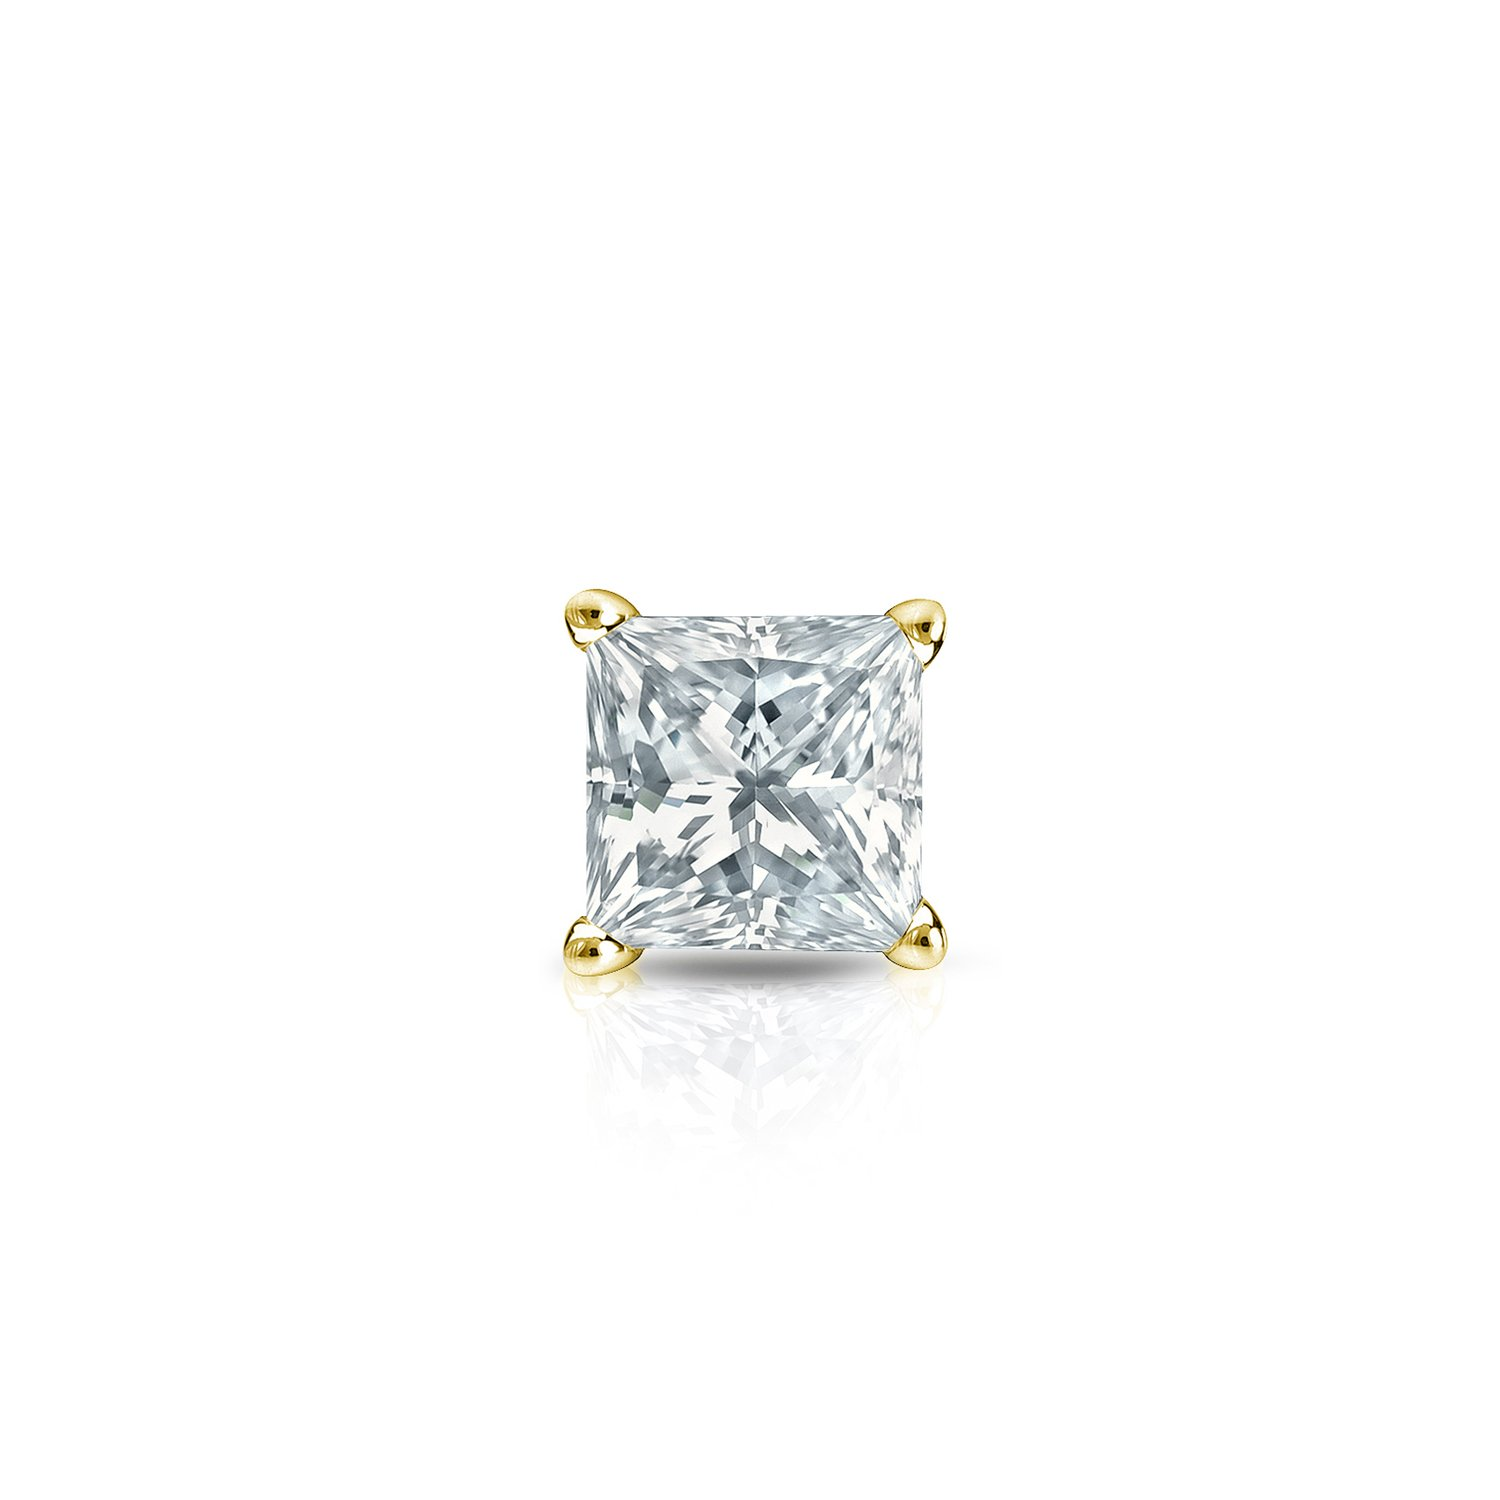 14k Yellow Gold Princess Diamond Simulant CZ SINGLE STUD Earring 4-Prong(1/4cttw,Excellent Quality)